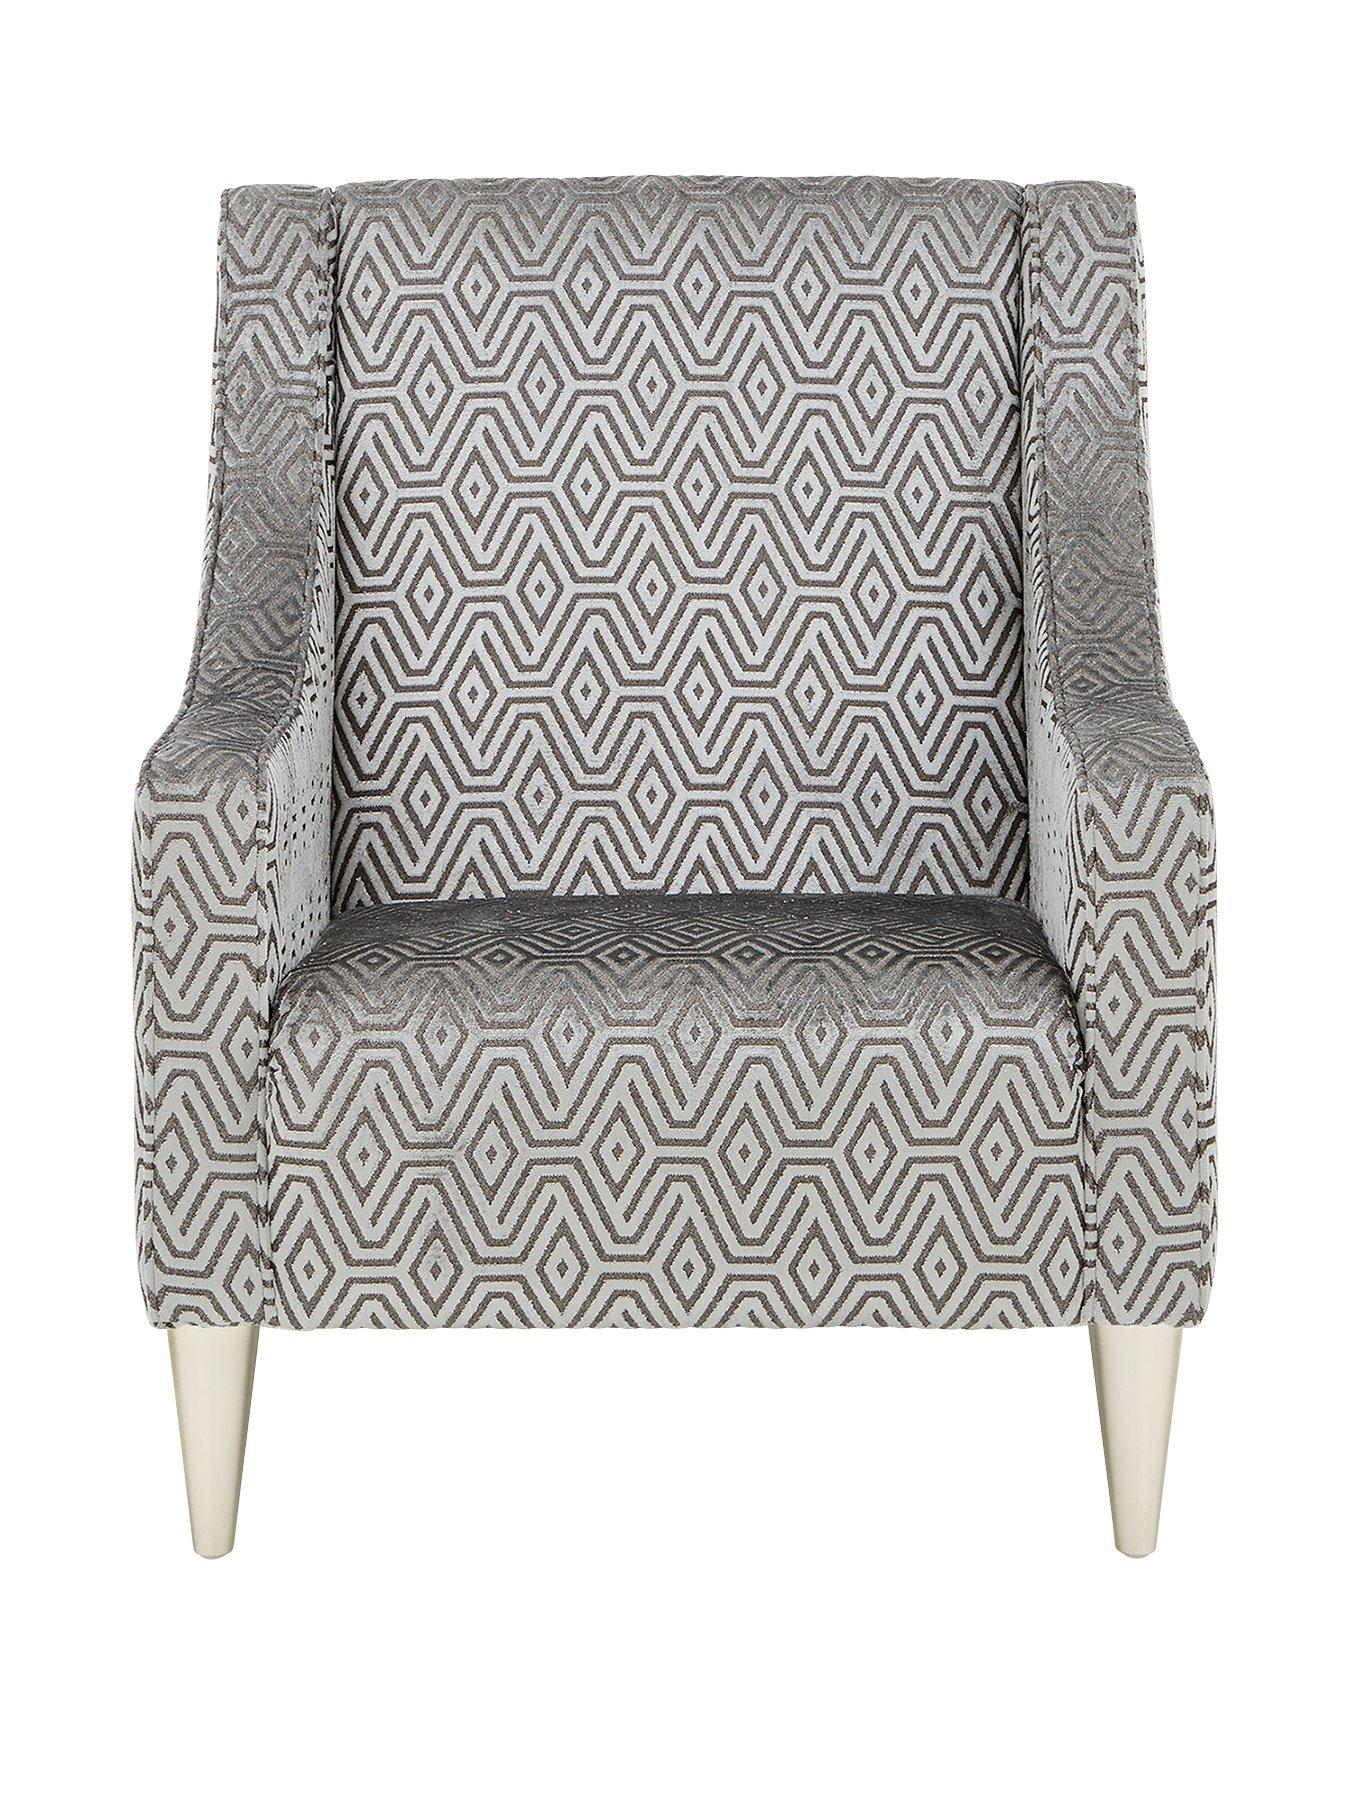 Laurence llewelyn bowen | Chairs | Home & garden | very